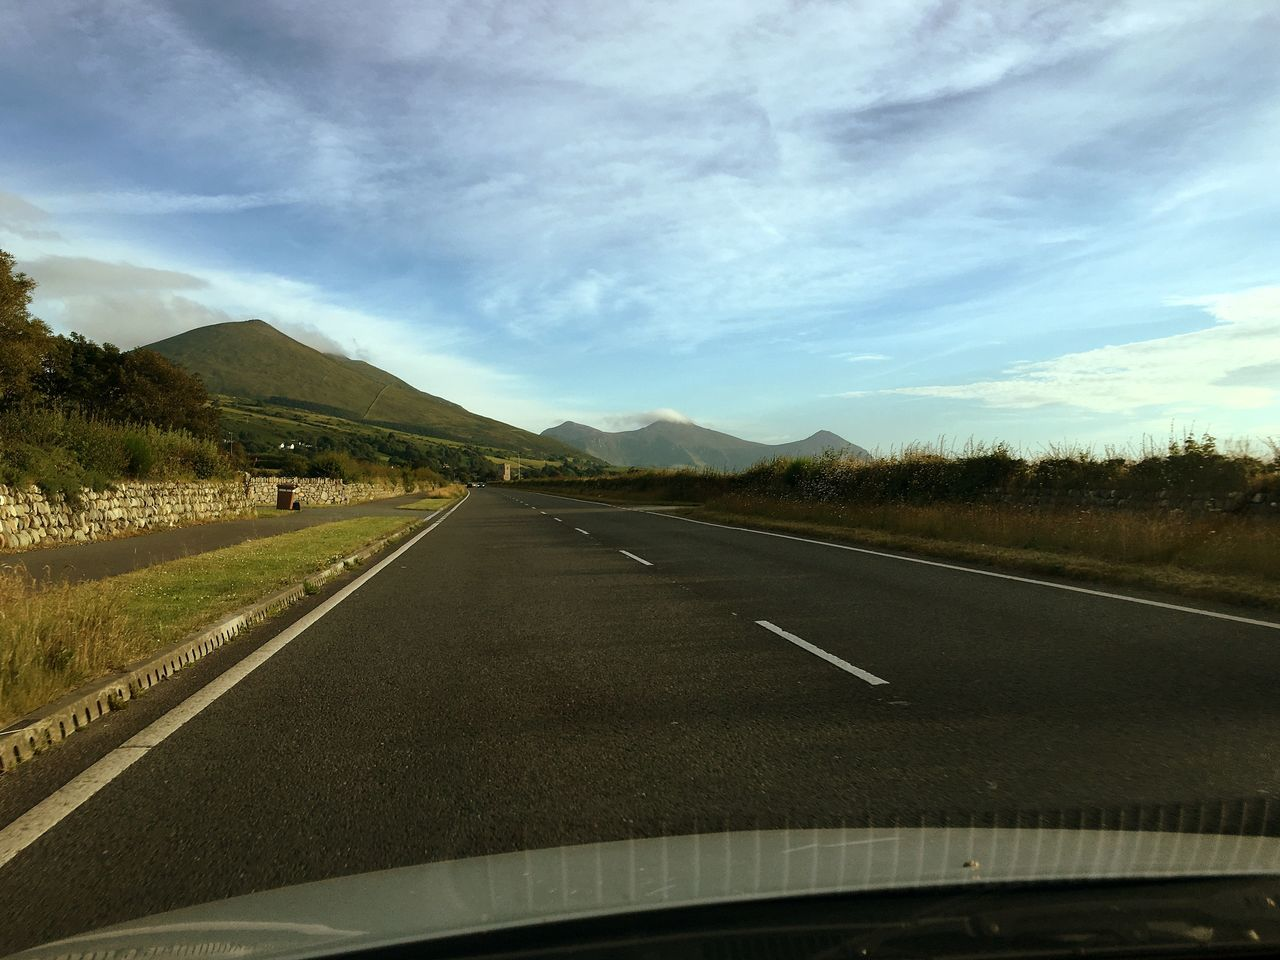 transportation, road, car, the way forward, car interior, land vehicle, car point of view, landscape, no people, mode of transport, windshield, scenics, sky, day, nature, journey, cloud - sky, road trip, travel, outdoors, mountain, tree, beauty in nature